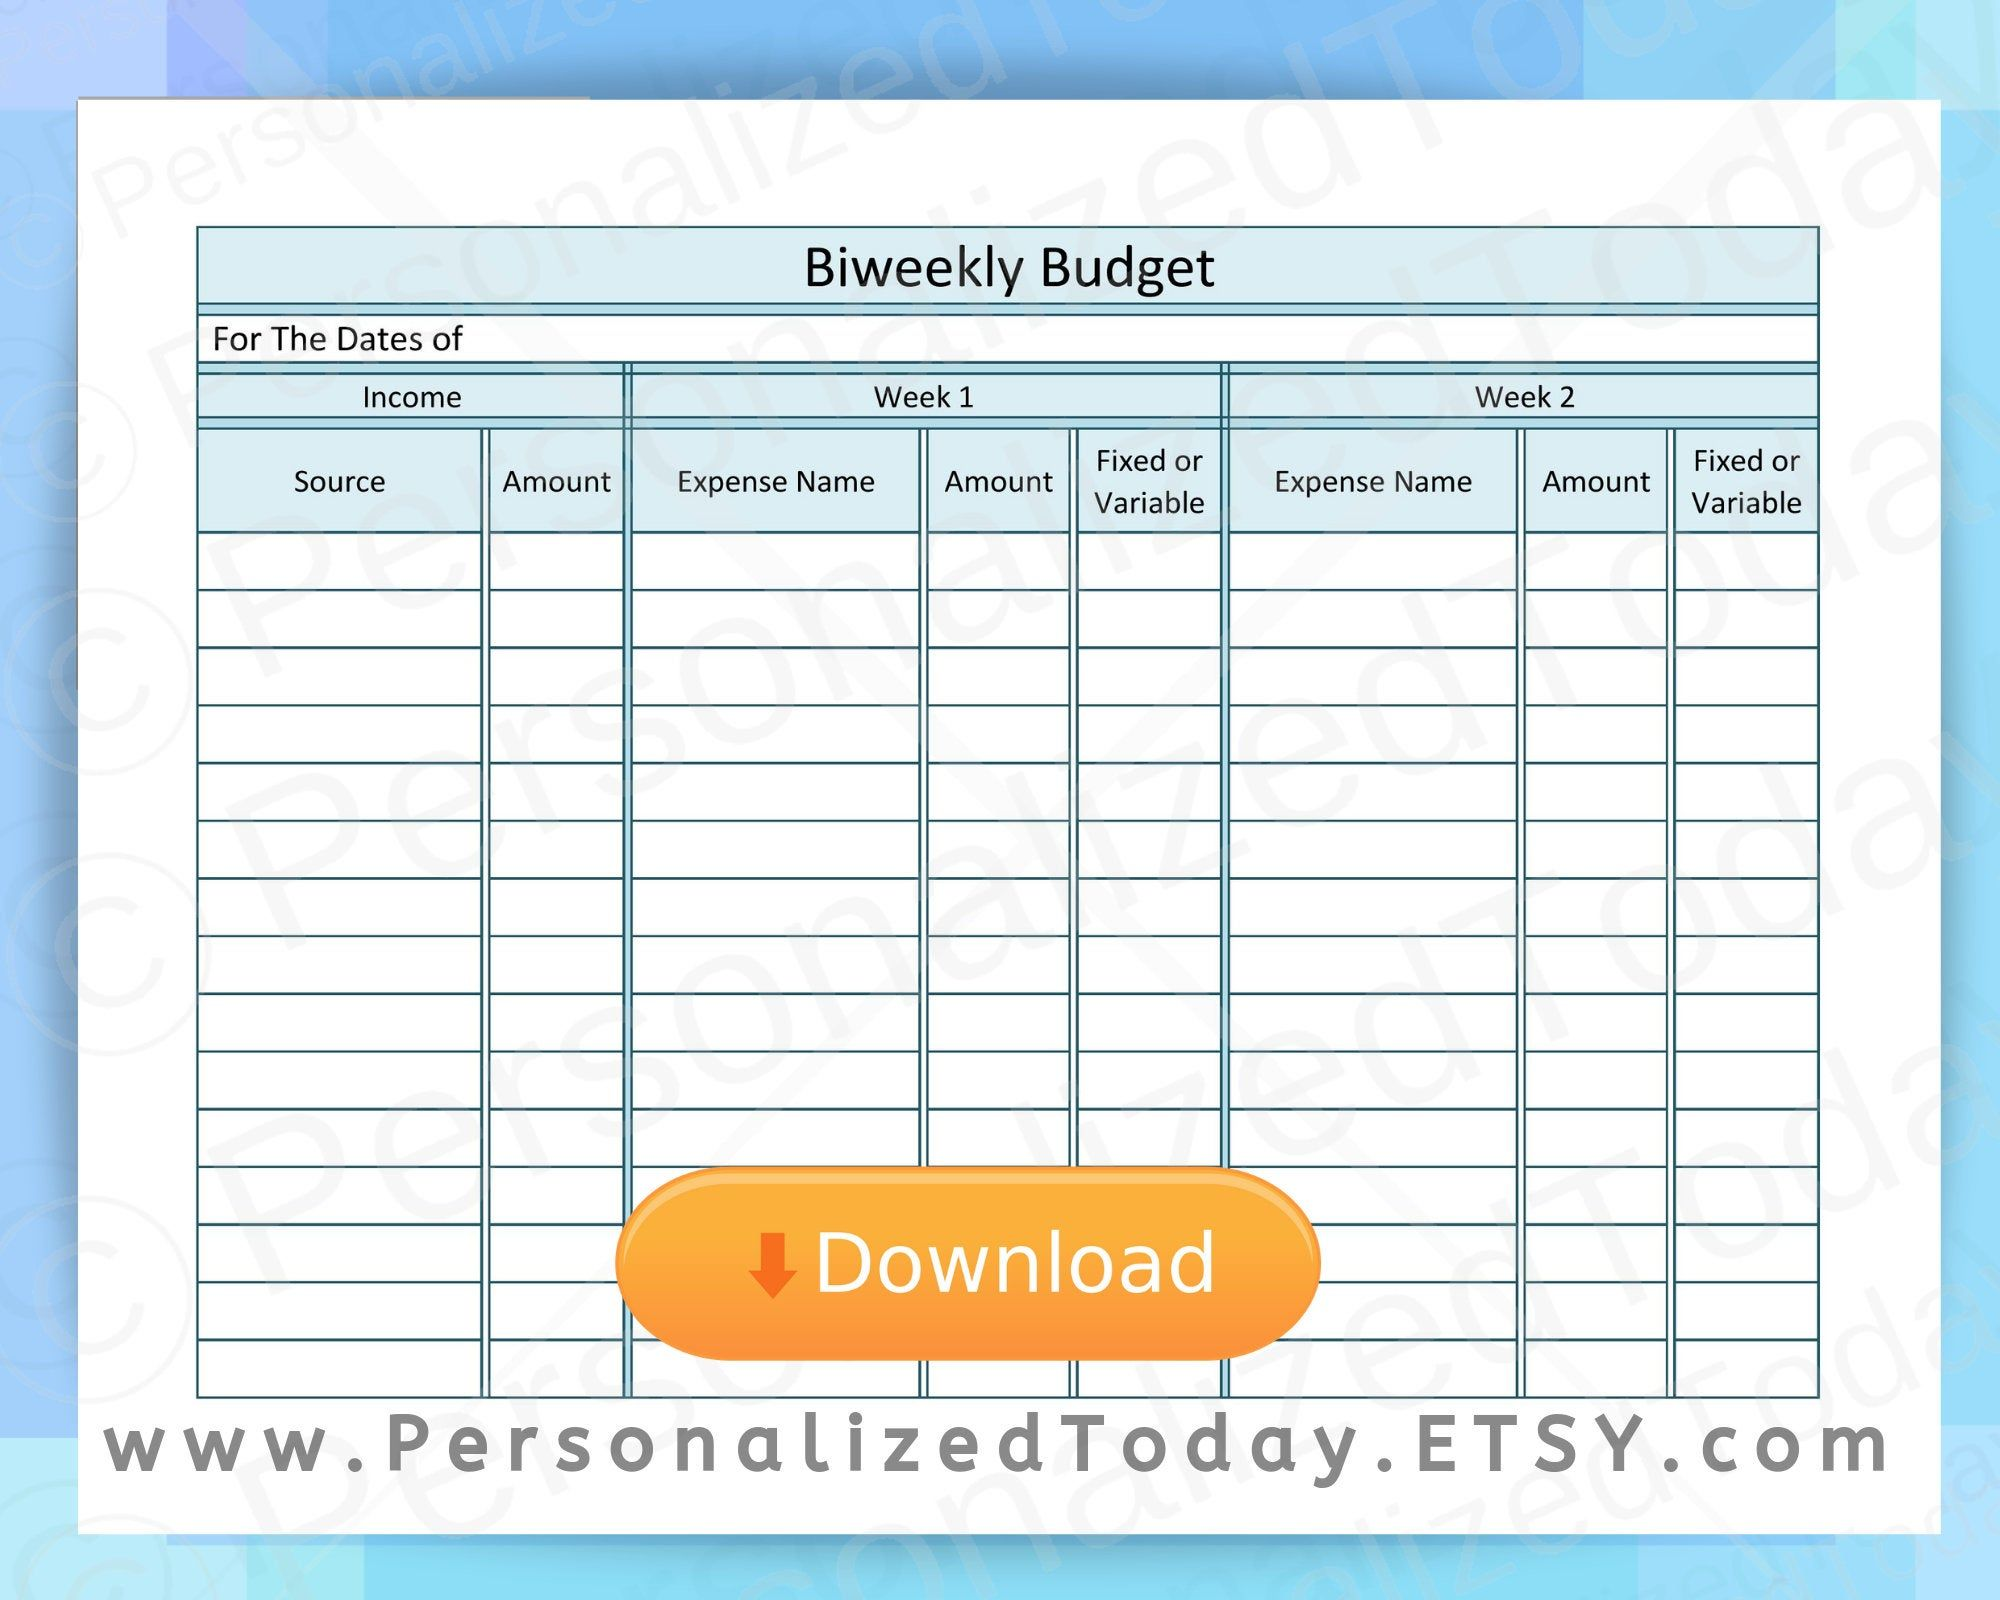 Biweekly Budget Income Amp 2 Weeks Of Expenses Printable